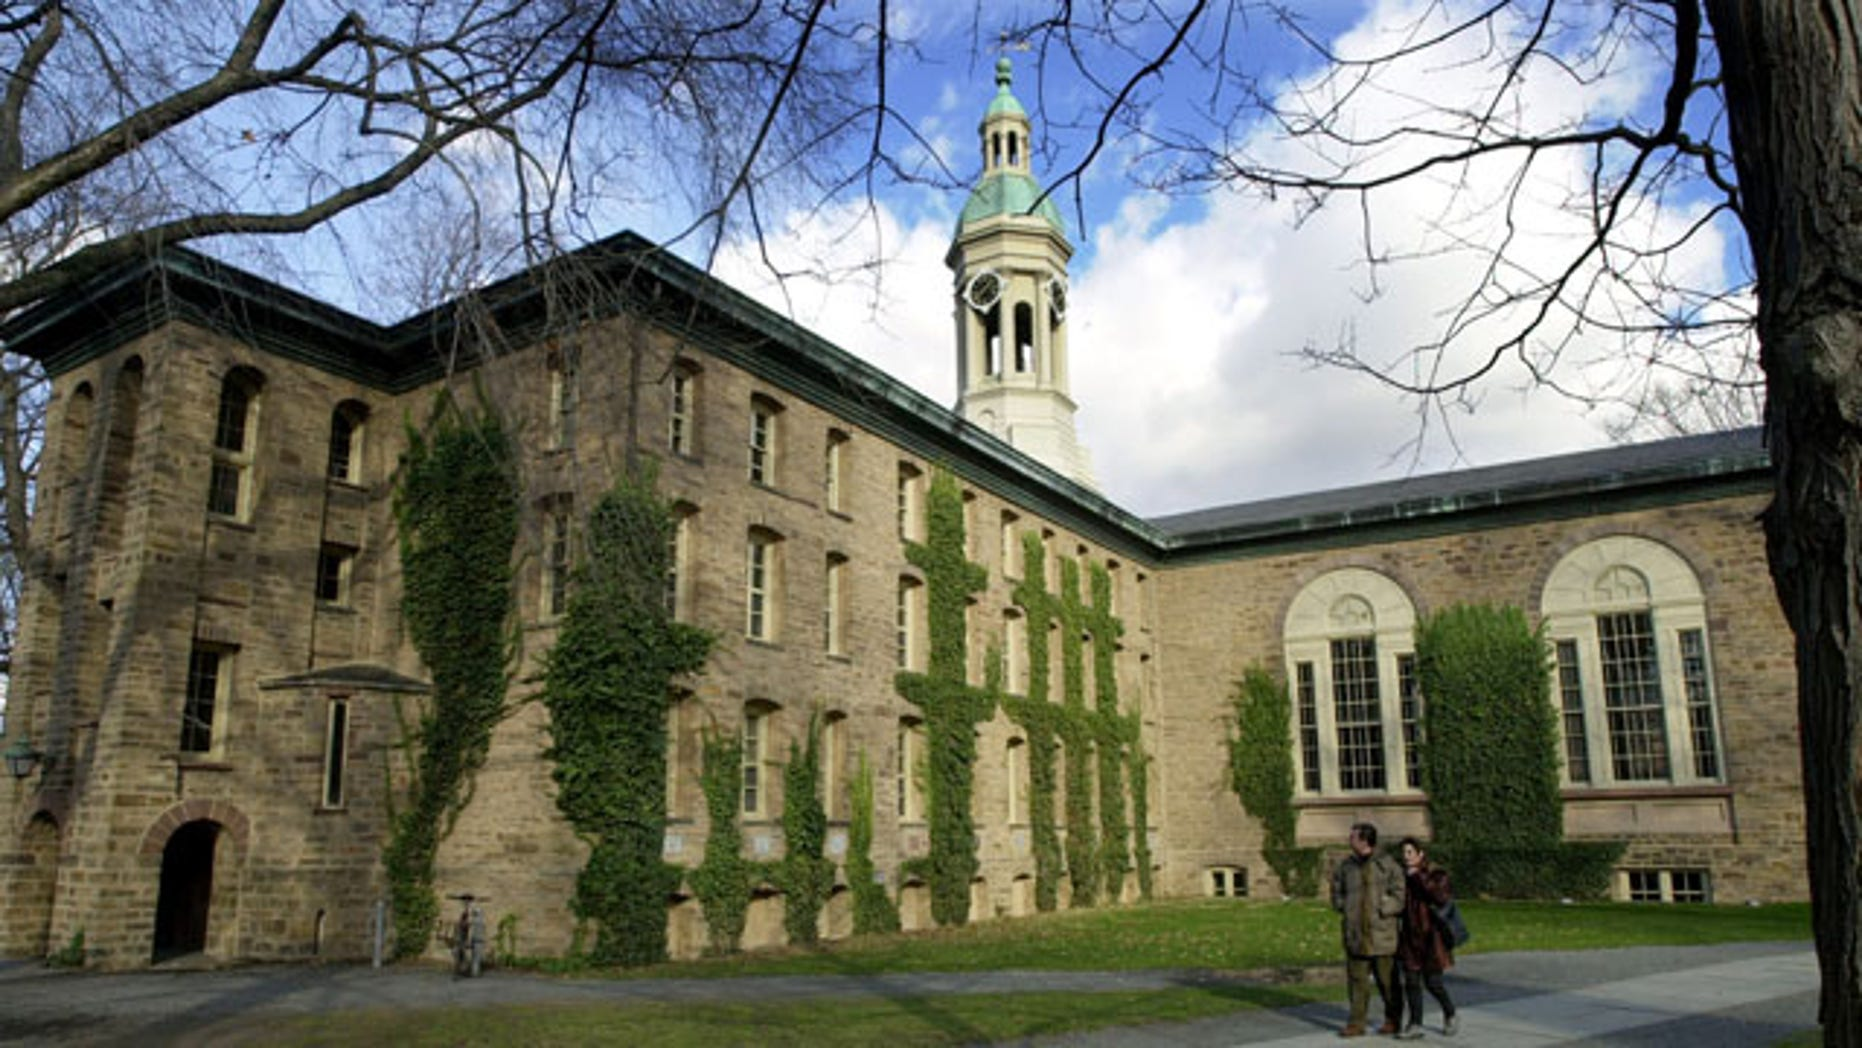 Nassau Hall on the campus of Princeton University in New Jersey. (AP Photo)